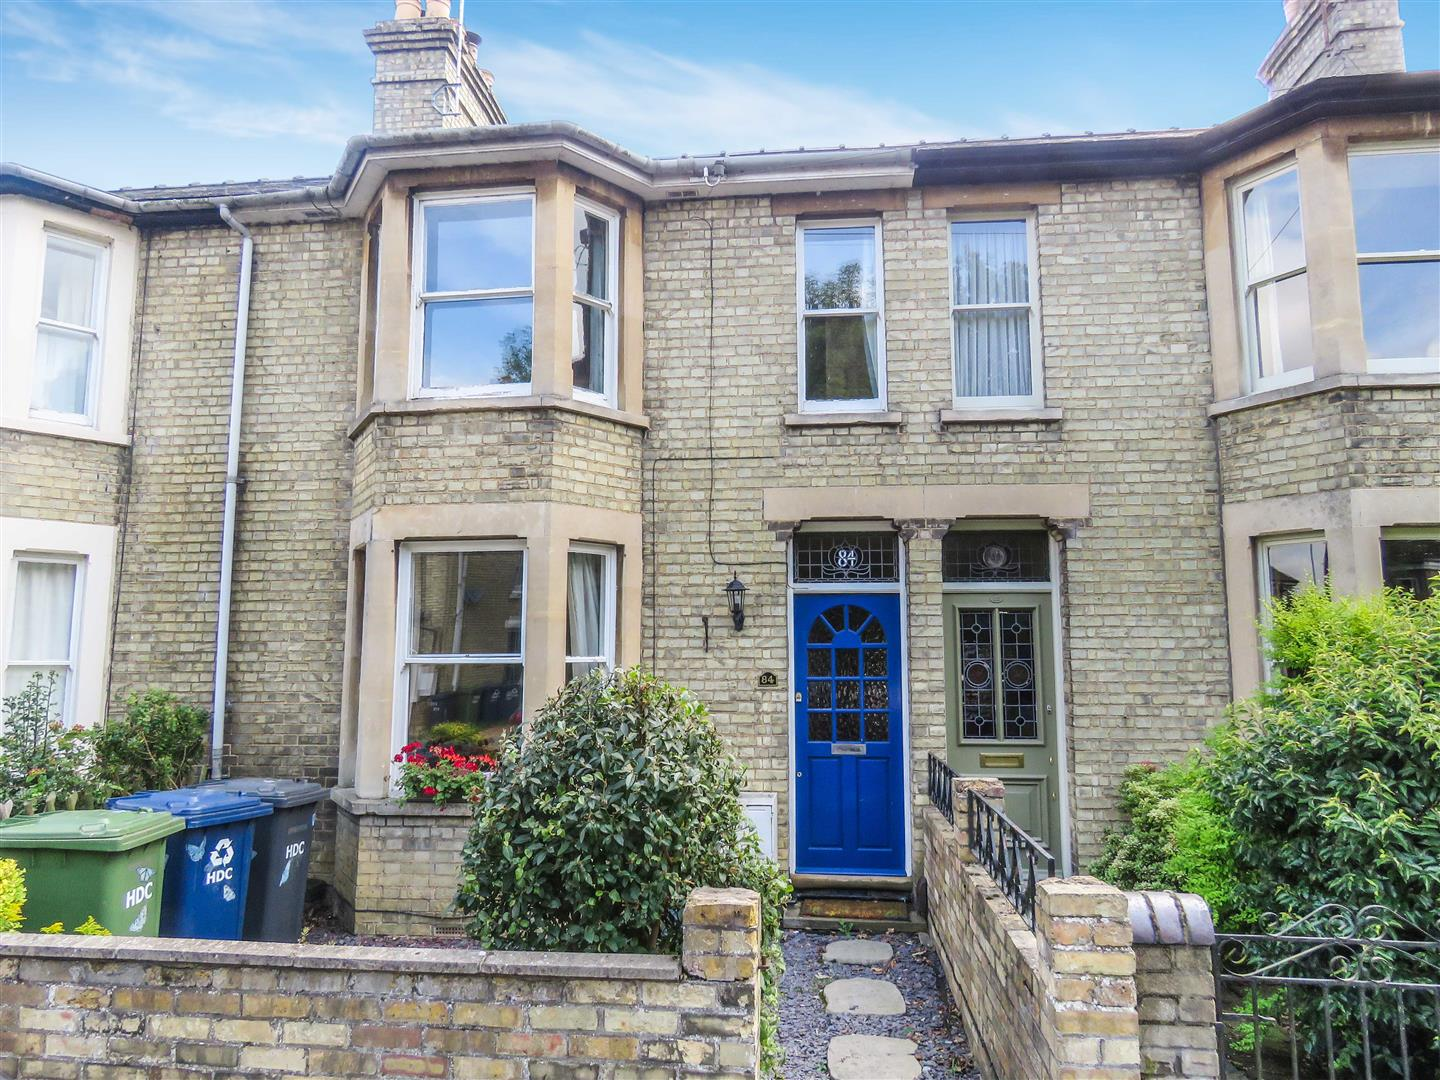 St Ives Cambridge Property For Sale